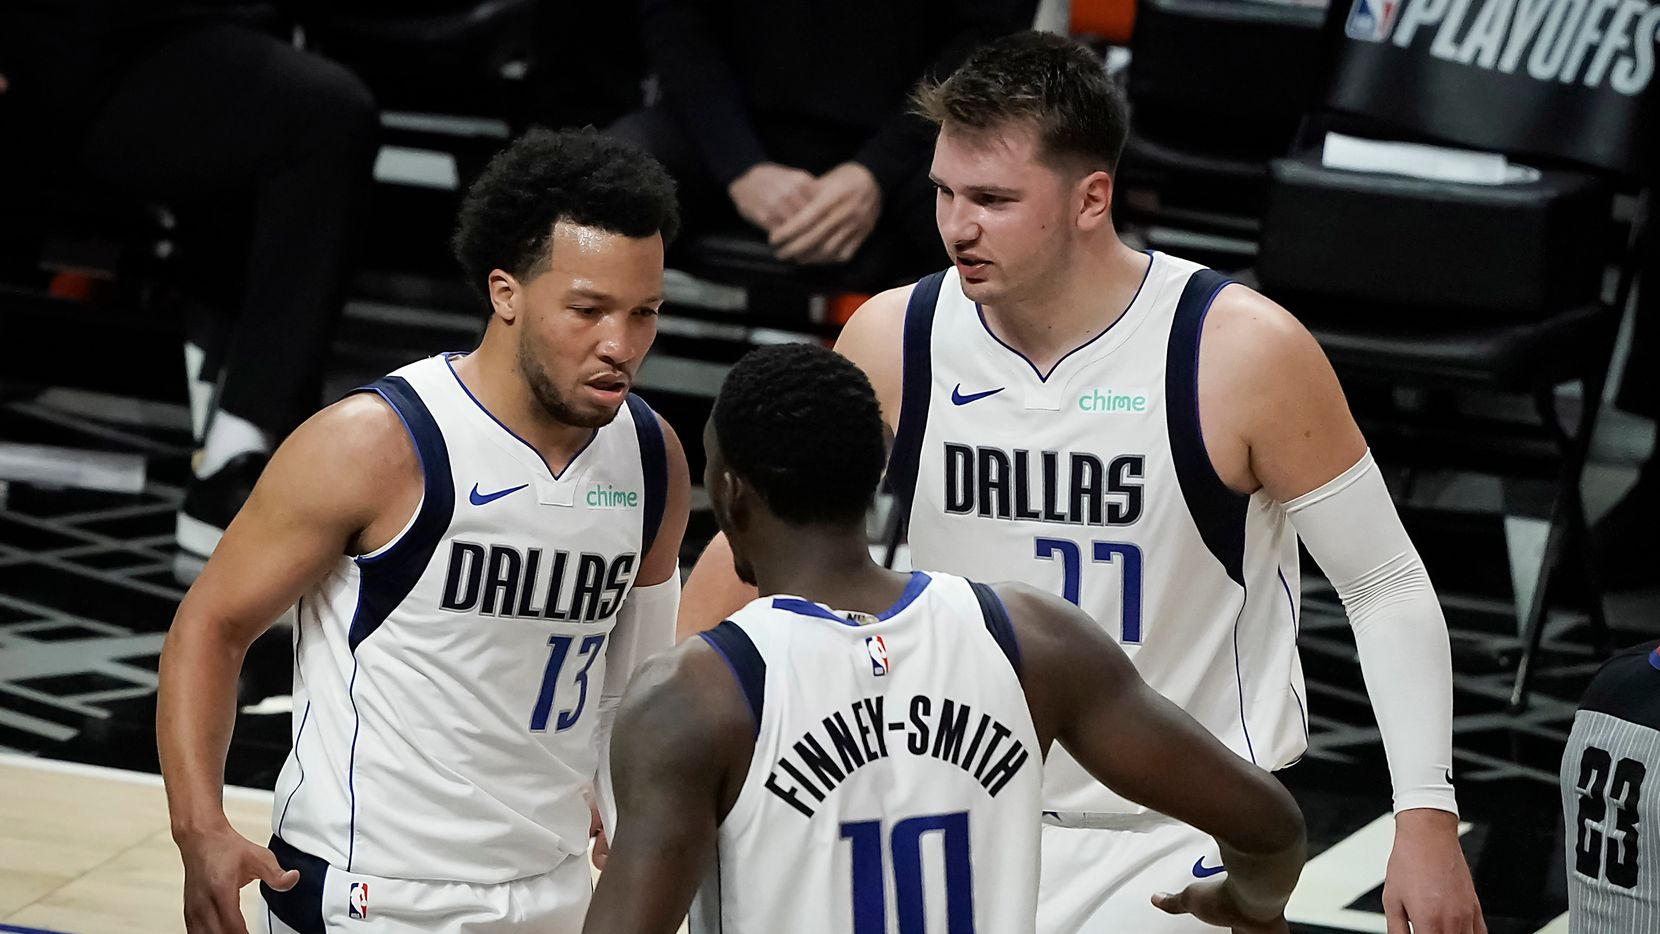 Dallas Mavericks guard Jalen Brunson celebrates with forward Dorian Finney-Smith (10) and guard Luka Doncic (77) after scoring and picking up an and-one foul during the second half of an NBA playoff basketball game against the LA Clippers at Staples Center on Saturday, May 22, 2021, in Los Angeles. The Mavericks won the game 113-103.